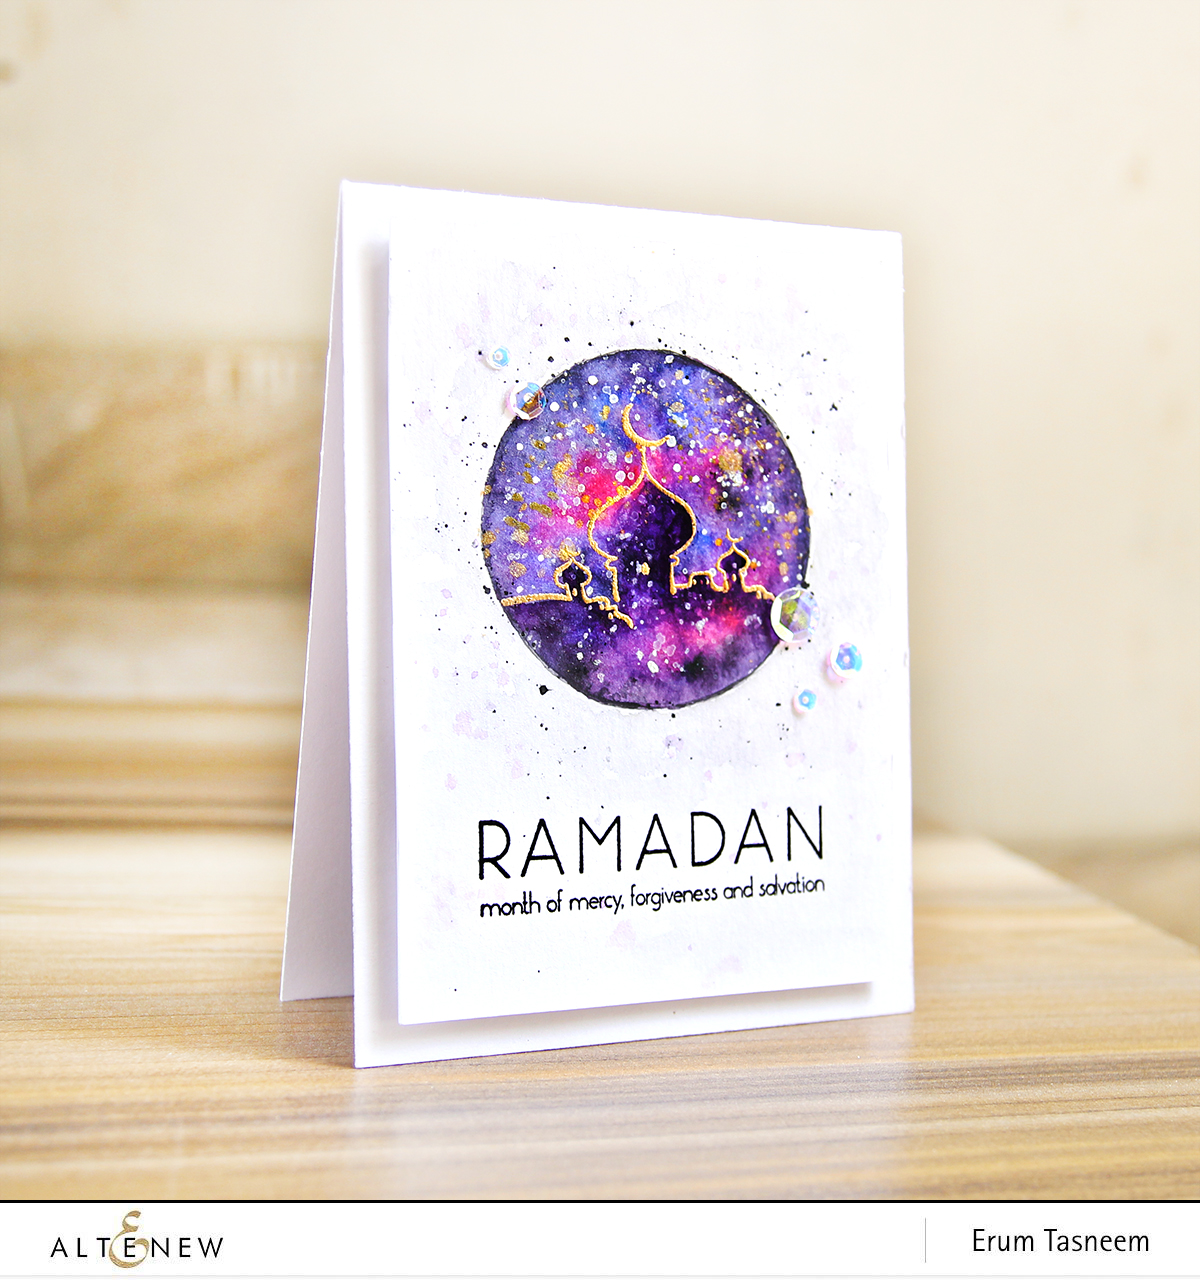 Video watercolor galaxy with ramadan greetings altenew blog altenew ramadan greetings stamp set watercolor galaxy erum tasneem pr0digy0 m4hsunfo